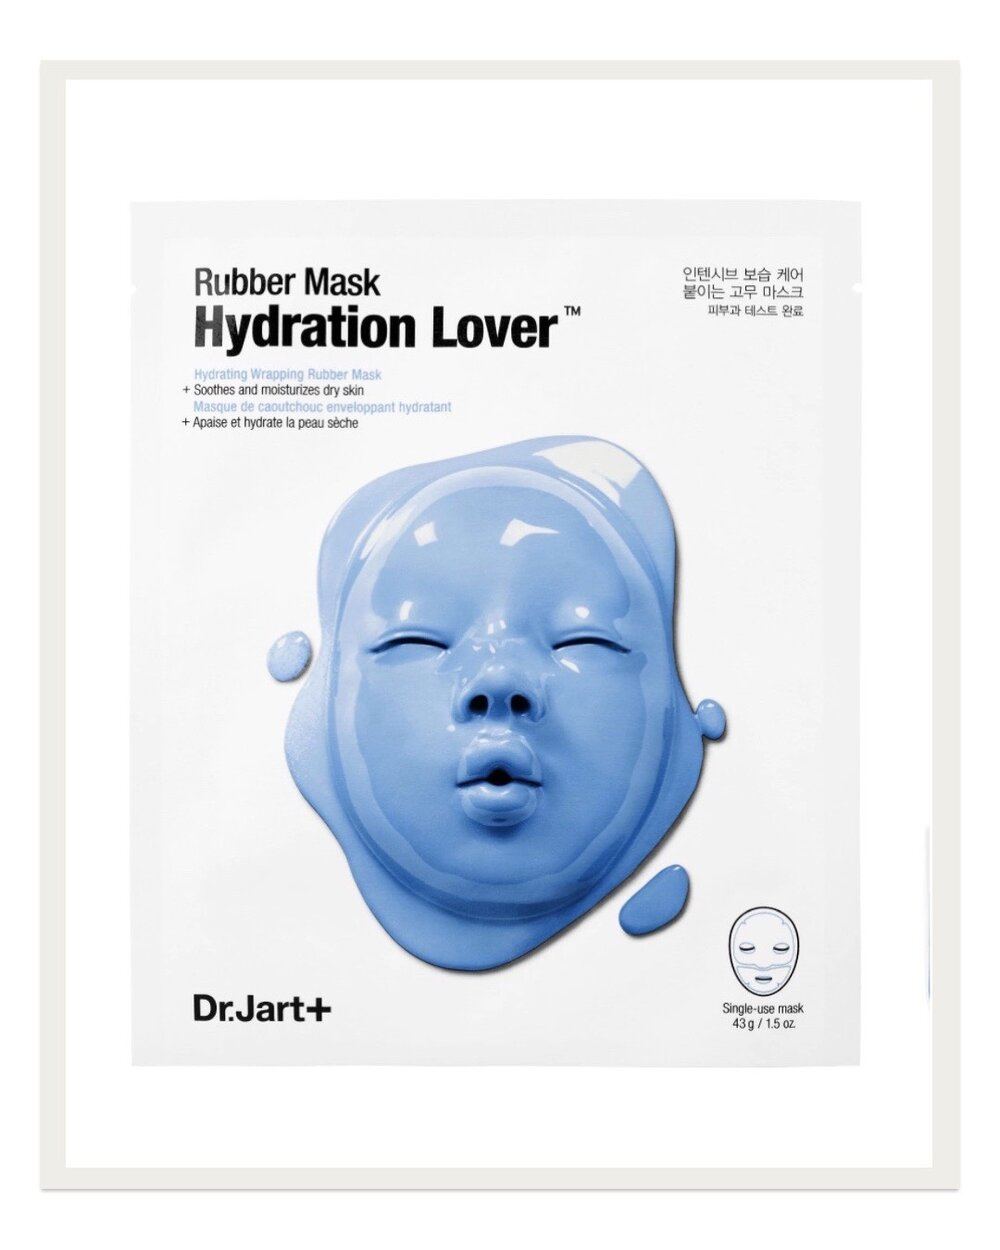 Face masks are always a go-to for self-care, but with so many on the market it's hard to know which ones are good. I am thoroughly in love with this Dr. Jart+ Hydration Lover Rubber Mask (and all of their other rubber masks!). It locks in moisture better than any others I've used and just looks and feels so cool while you're wearing it.